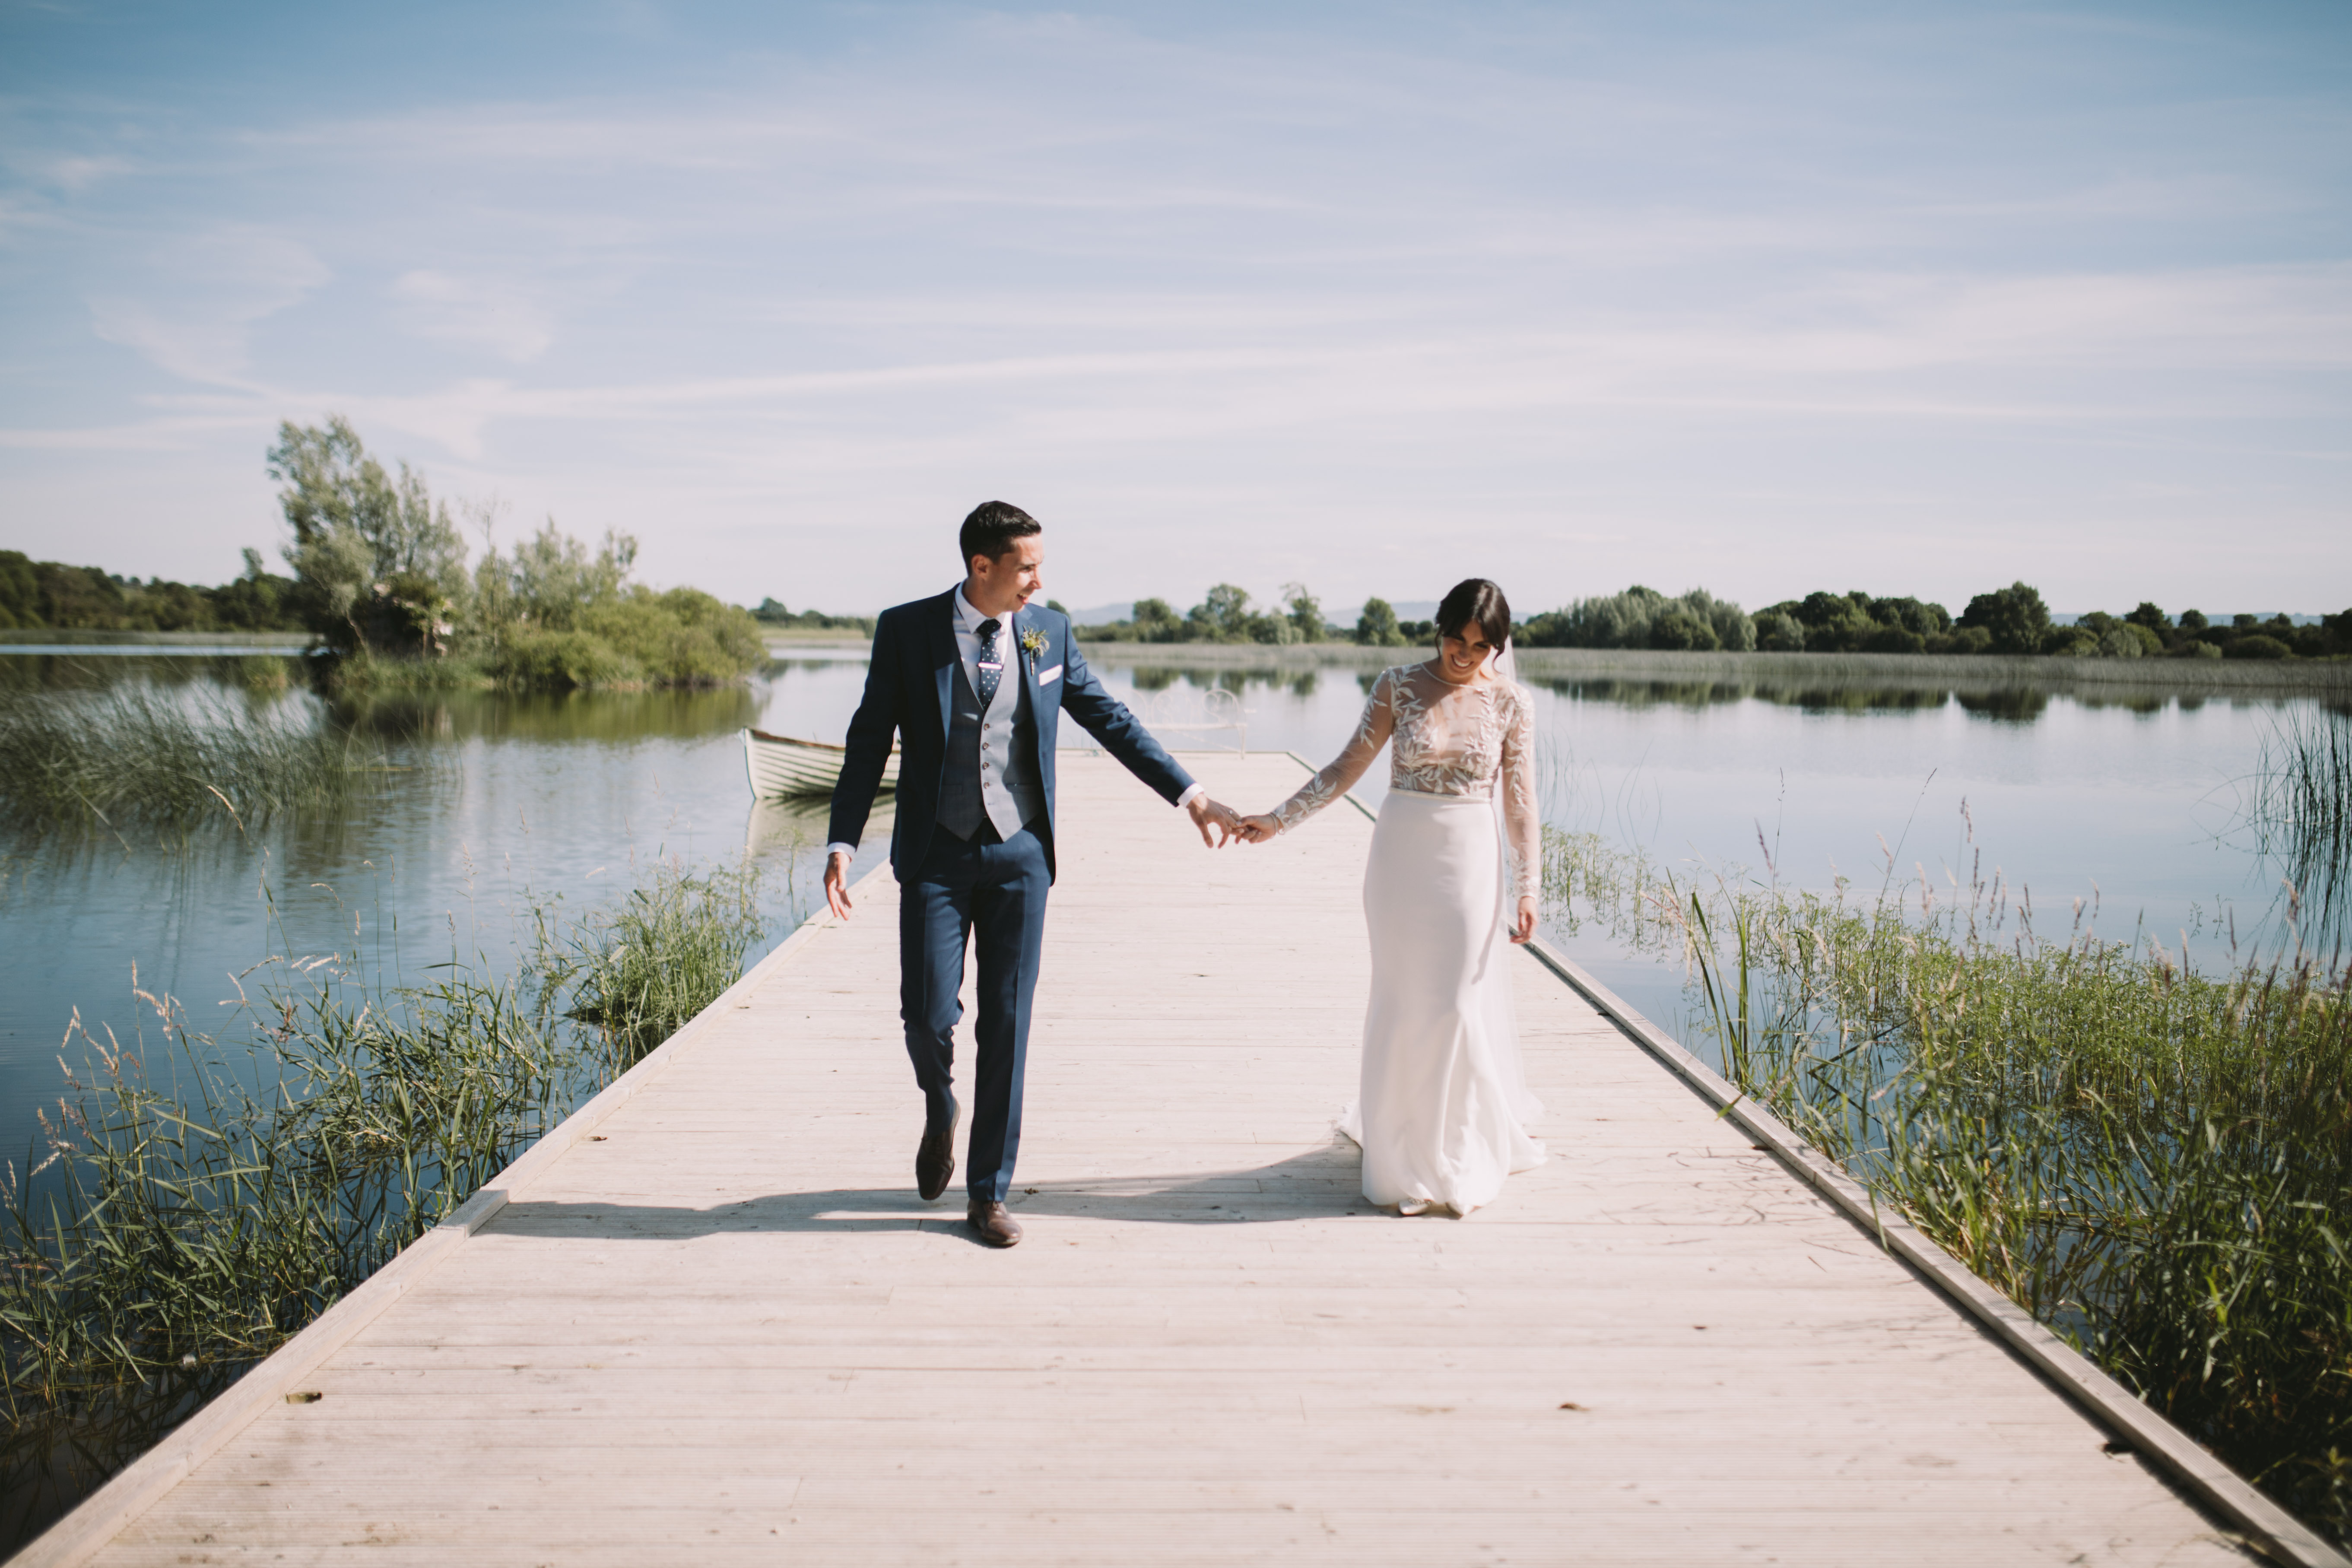 wedding couple on lakeside jetty